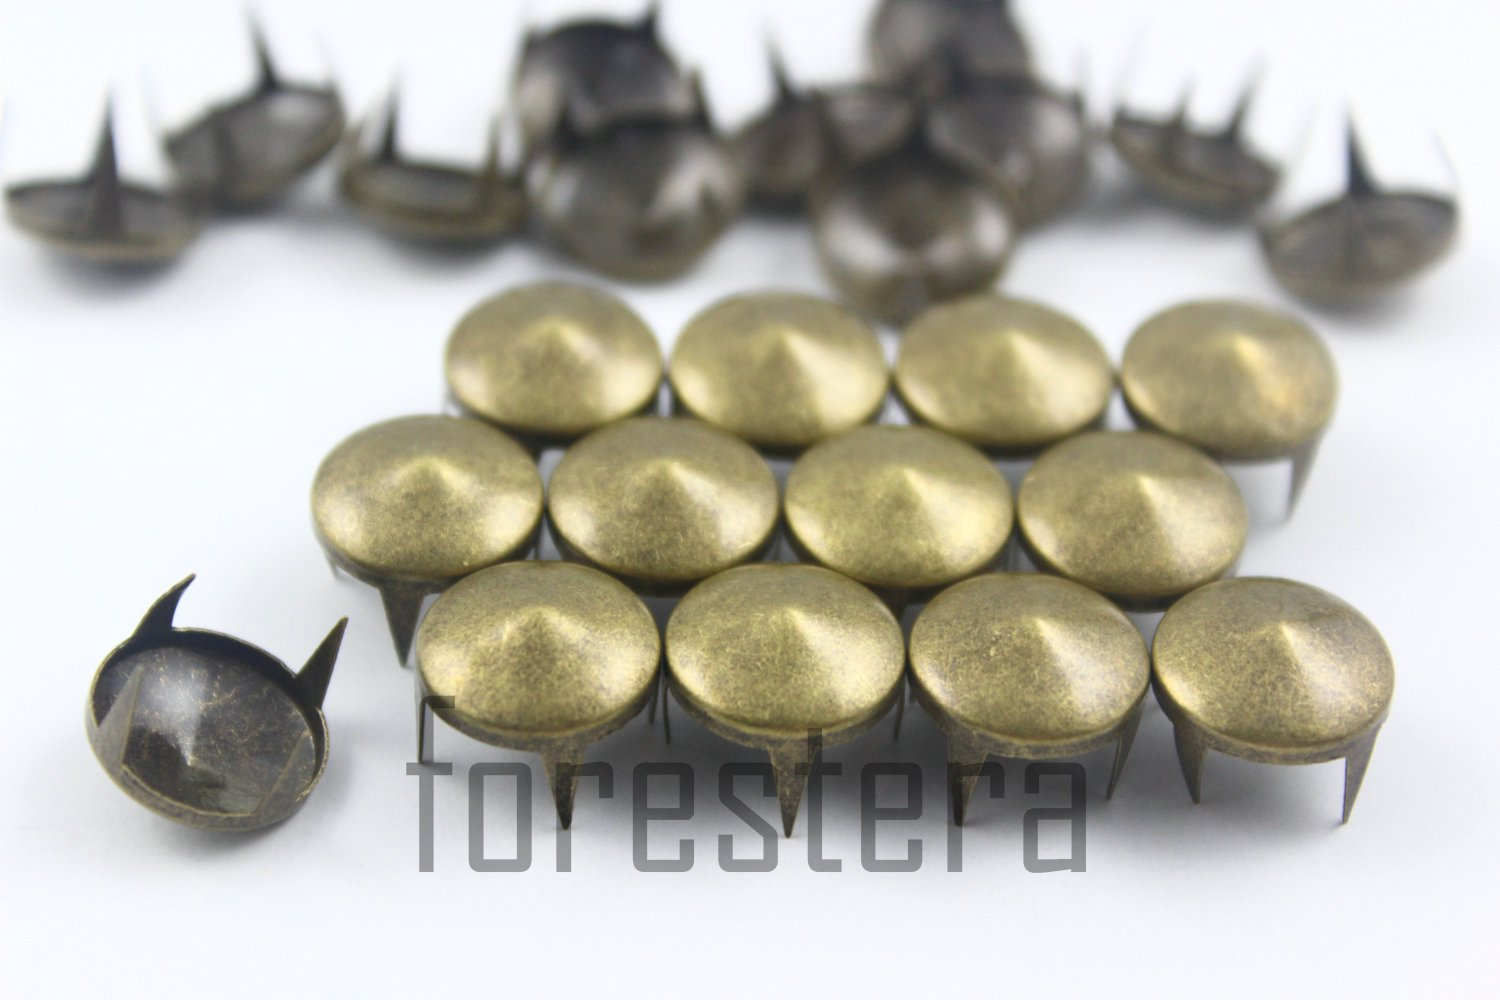 100 12mm Antique Brass Cone Conical Studs DIY Studs Metal Studs Craft Studs Spike (BC12)